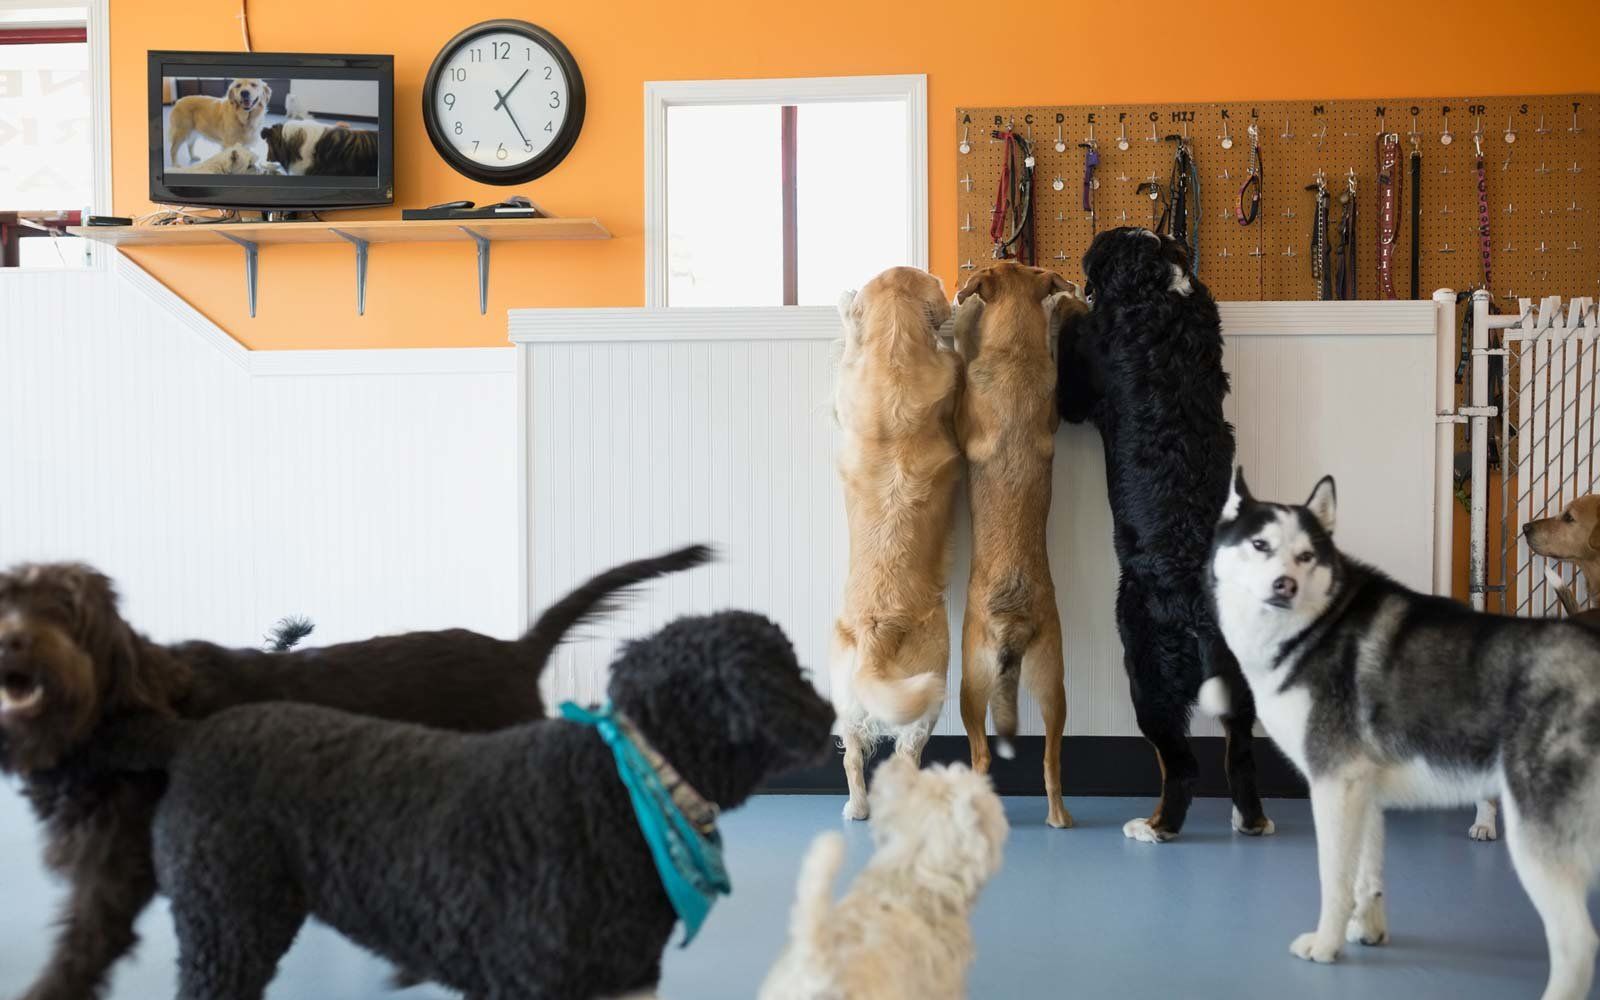 Dogs playing in dog daycare